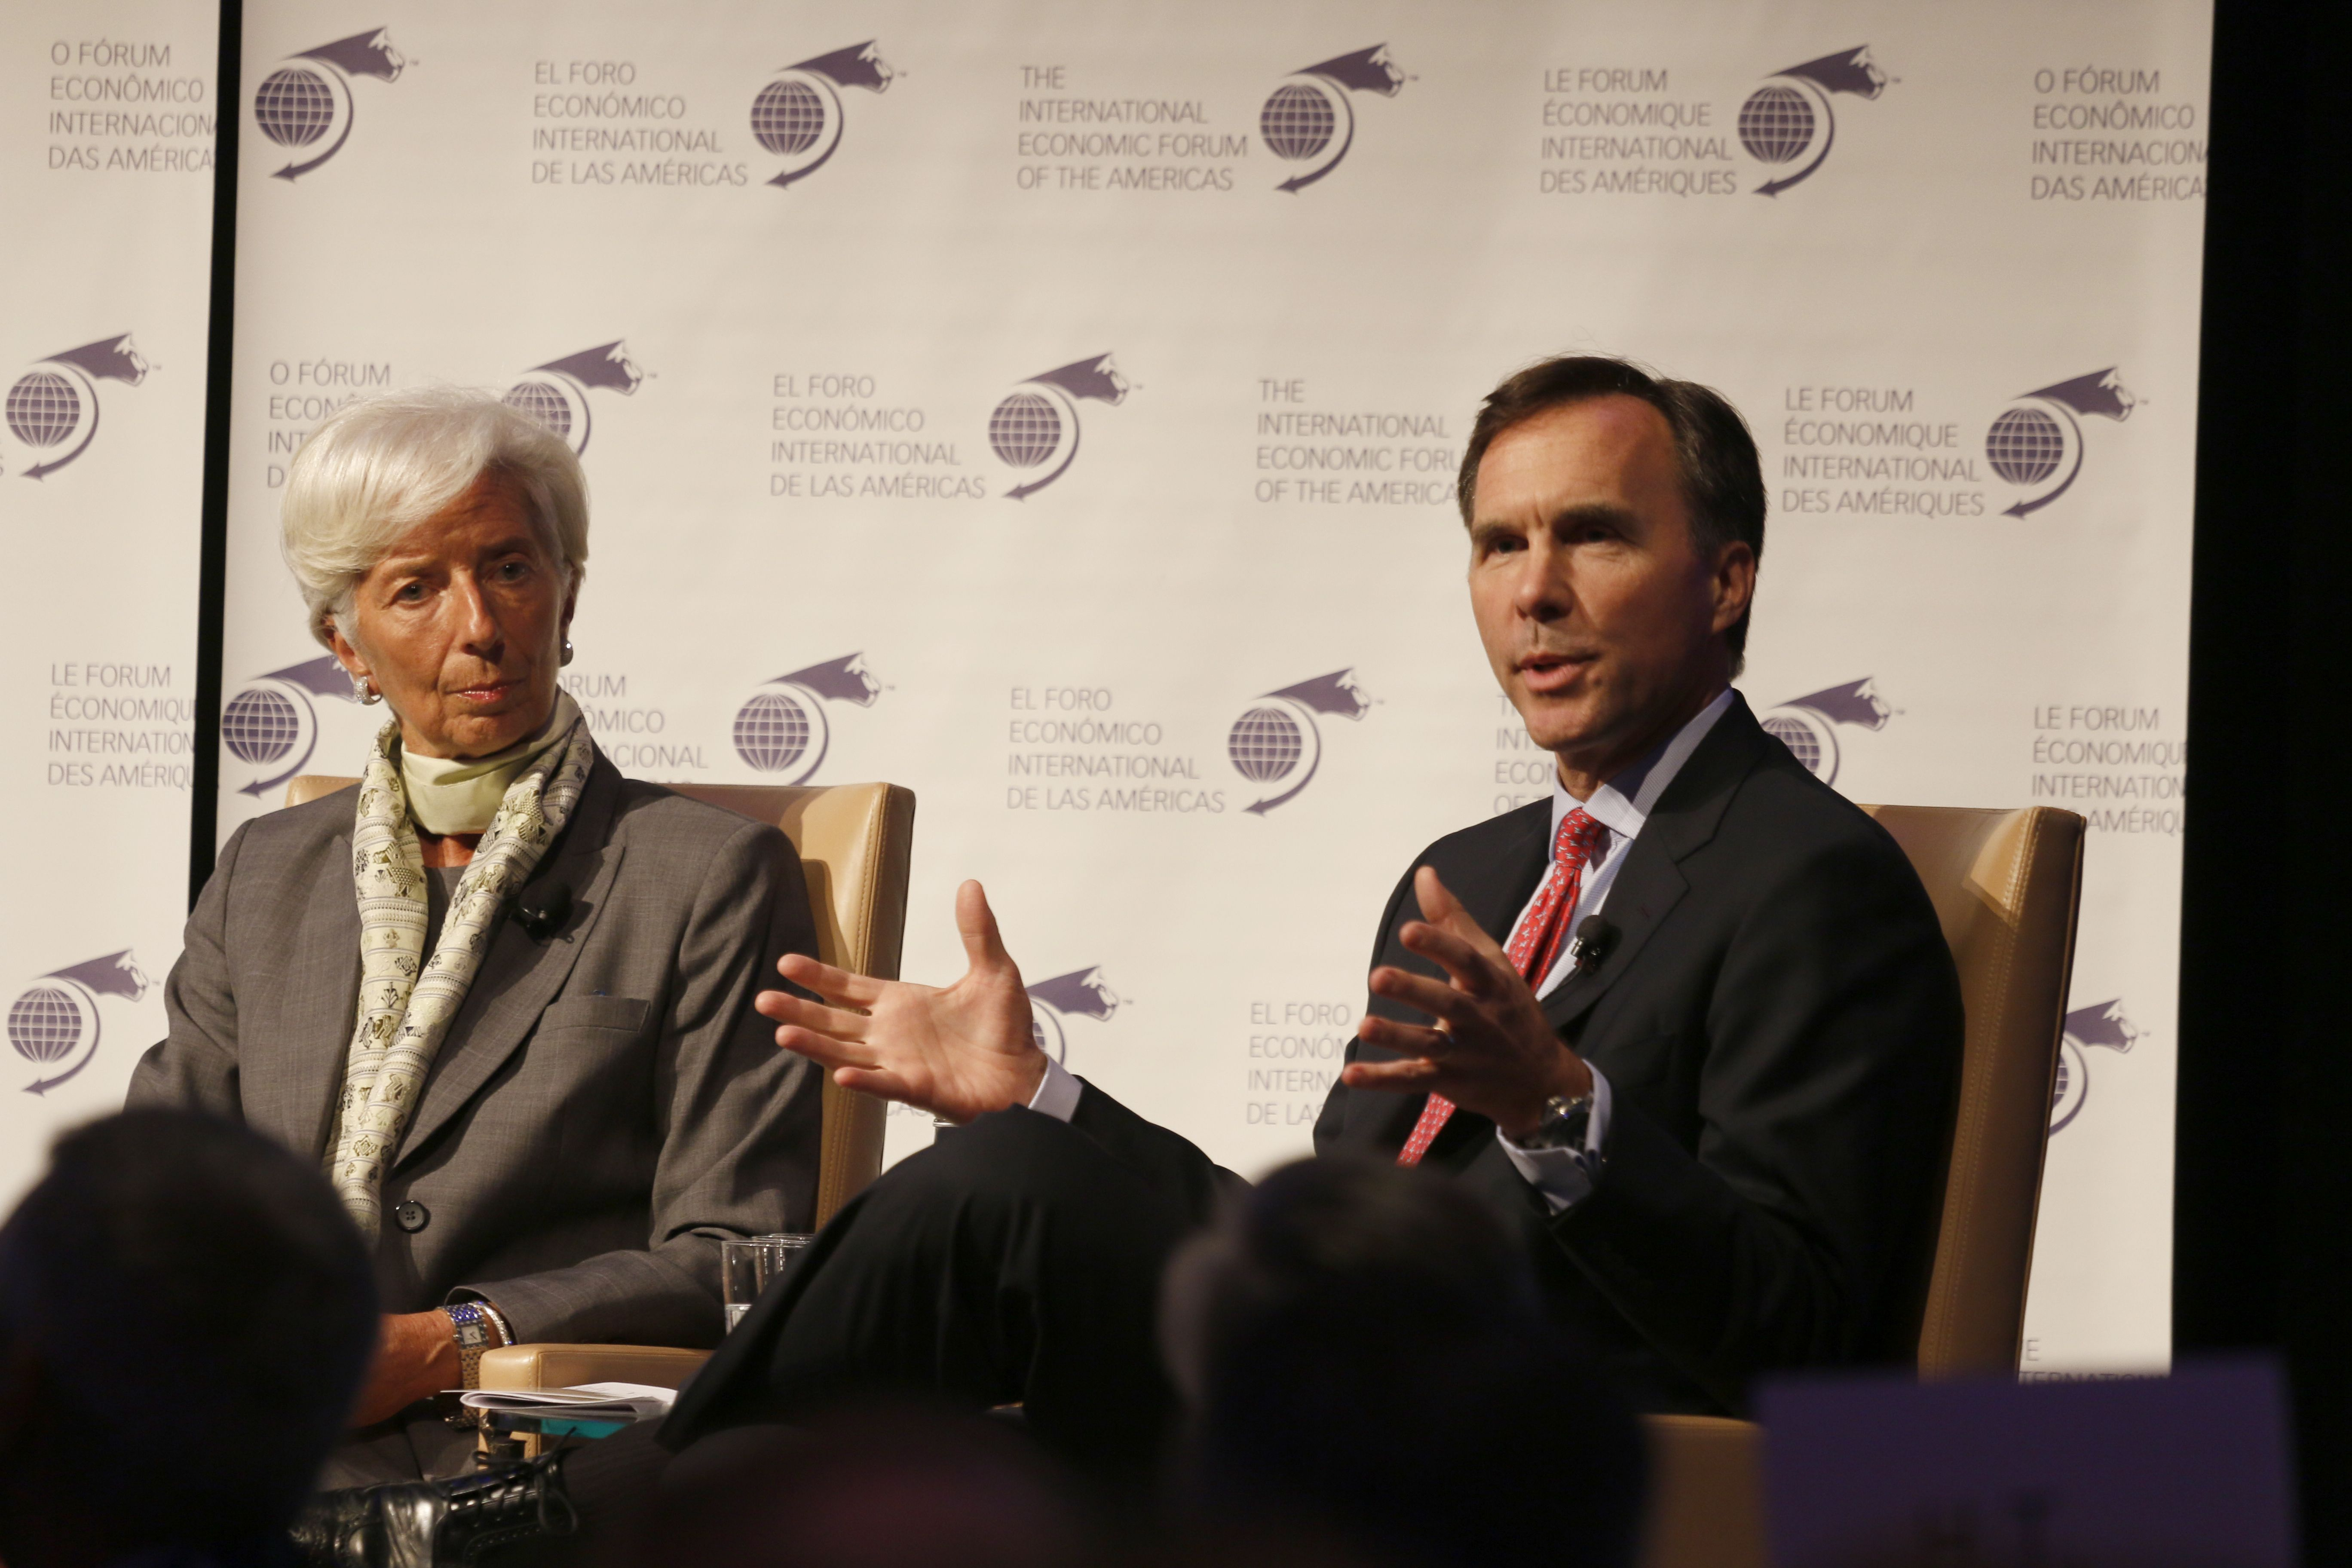 Christine Lagarde, Managing Director, International Monetary Fund (IMF) and William Francis Morneau, Minister of Finance, Canada - Toronto Global Forum 2016